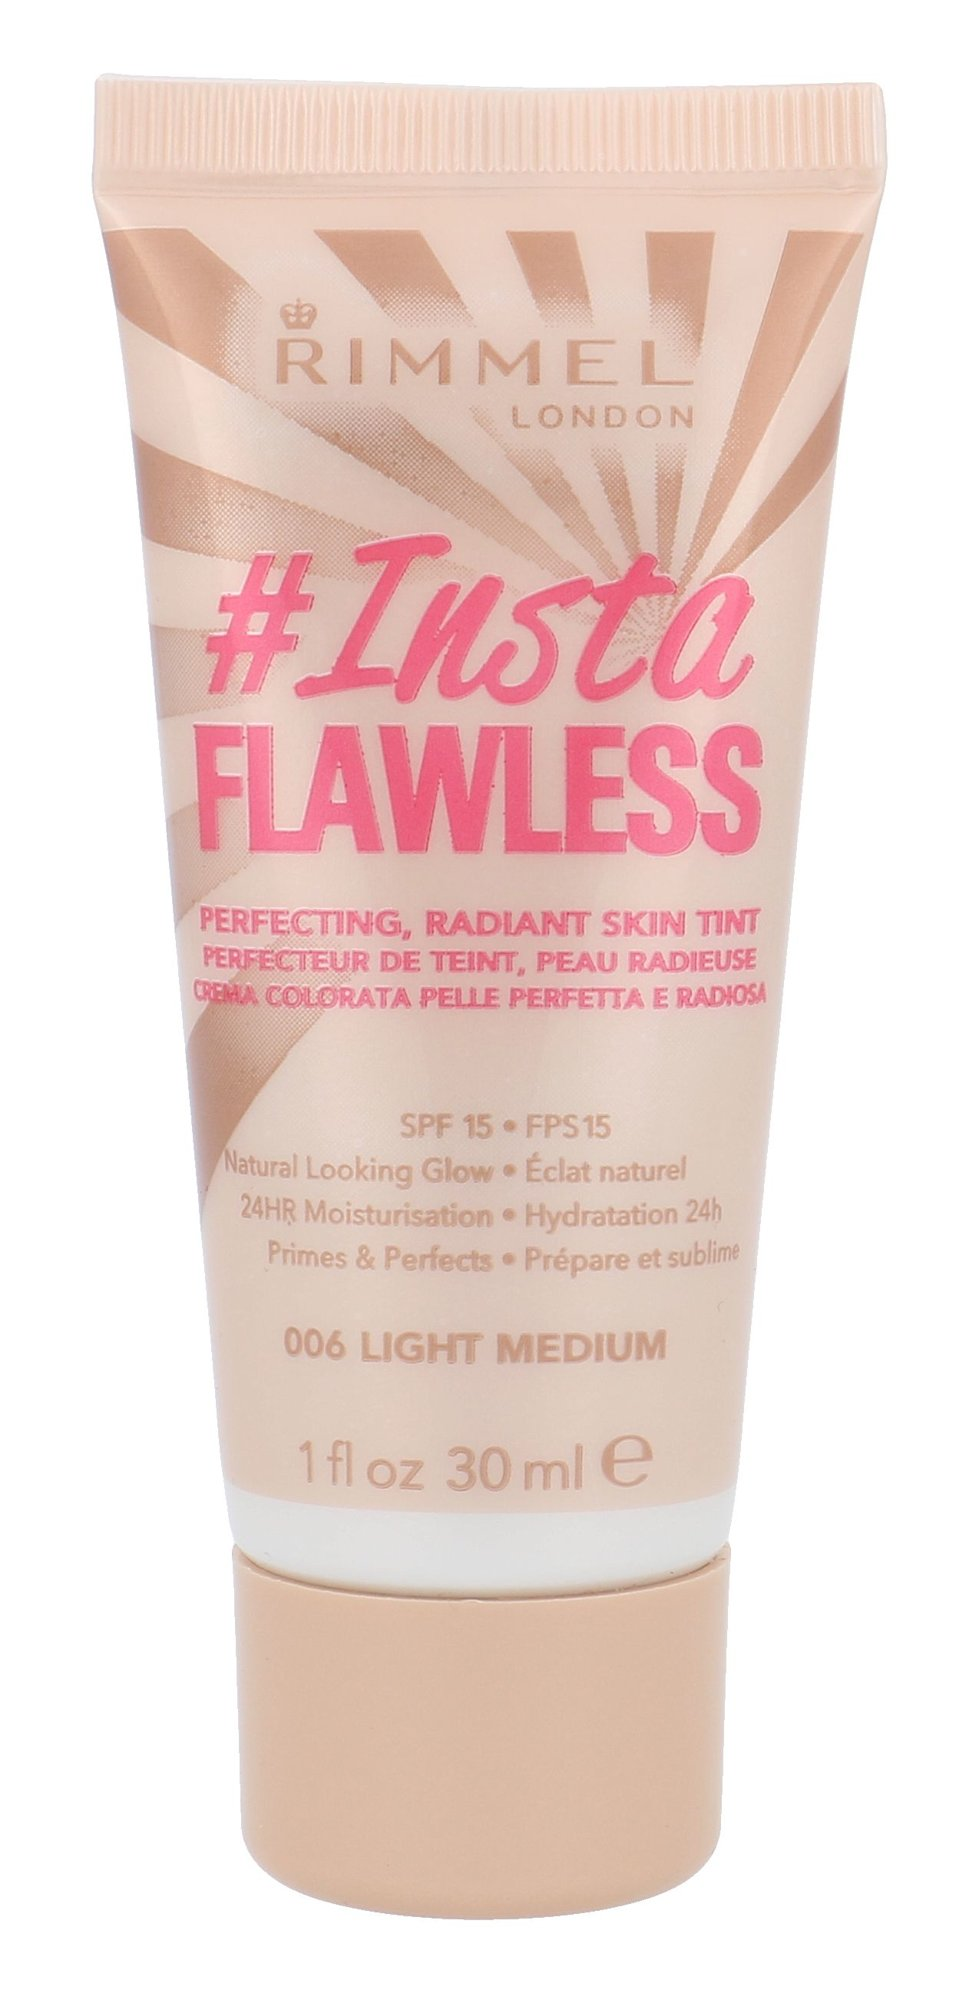 Rimmel London Instaflawless Primer SPF15 Cosmetic 30ml 006 Light Medium